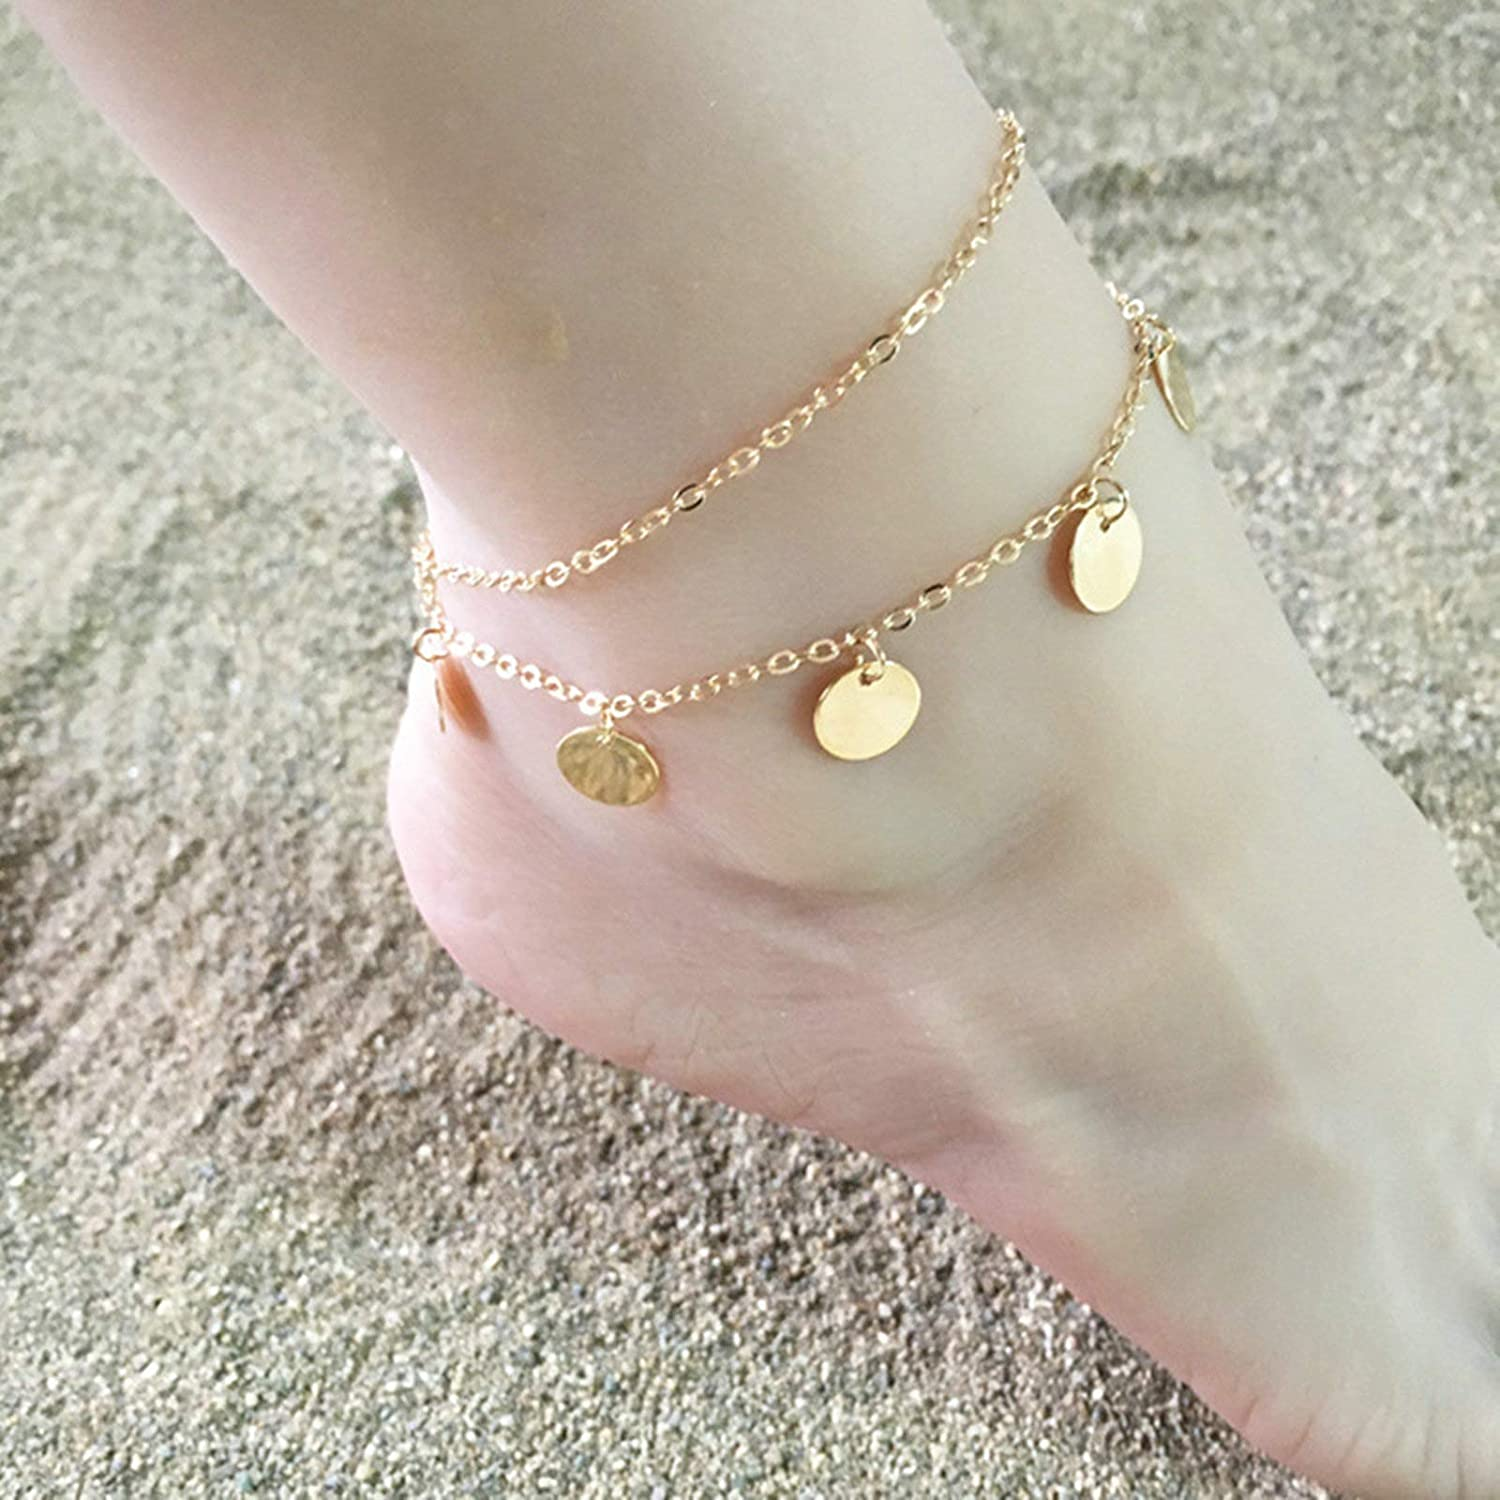 KnSam Beach Anklet Bracelet Chain for Women Alloy Double Layers Polished Disc Anklet for Girls